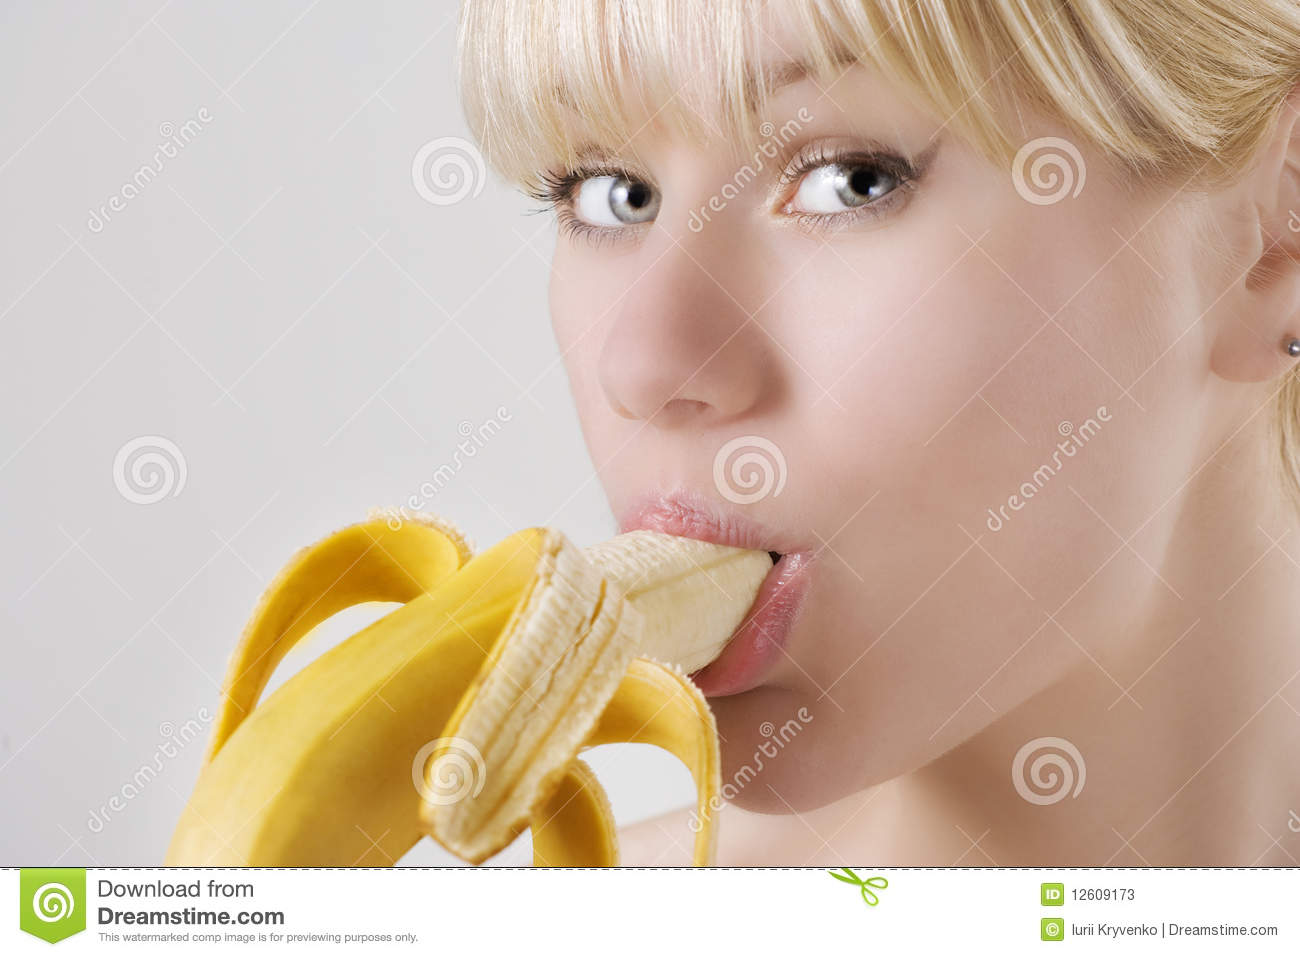 Woman Eating Banana Stock Photos - Image: 12609173